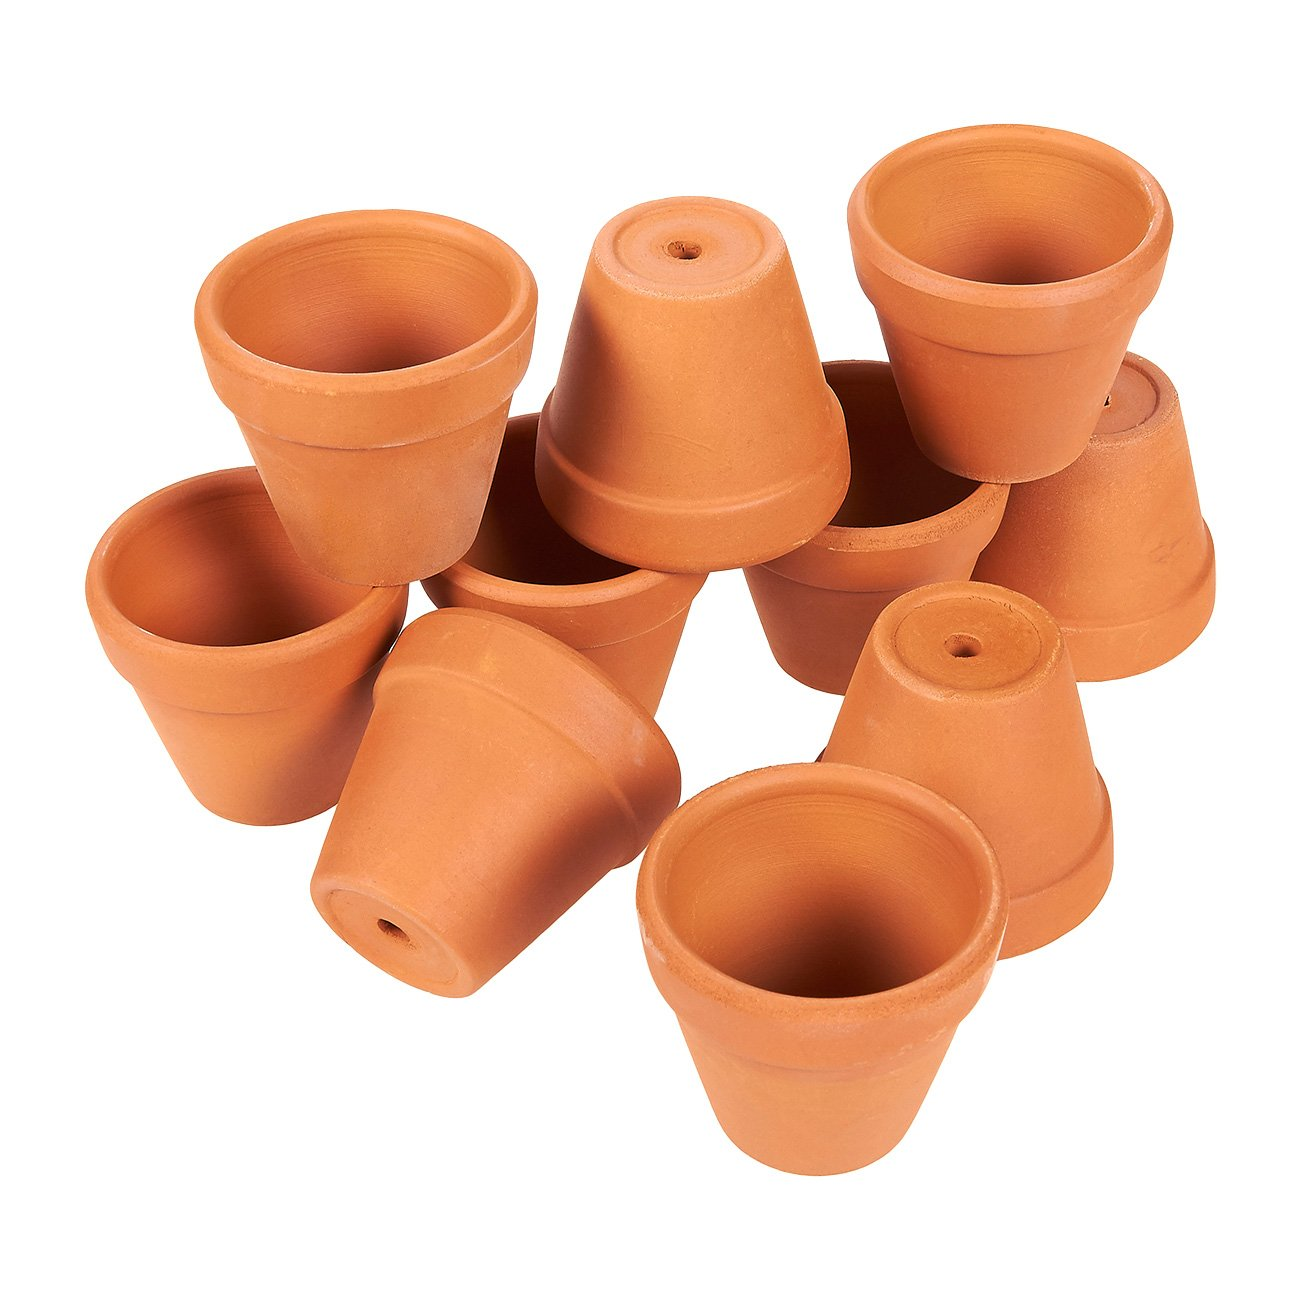 Cheap Clay Flower Pots Small Find Clay Flower Pots Small Deals On